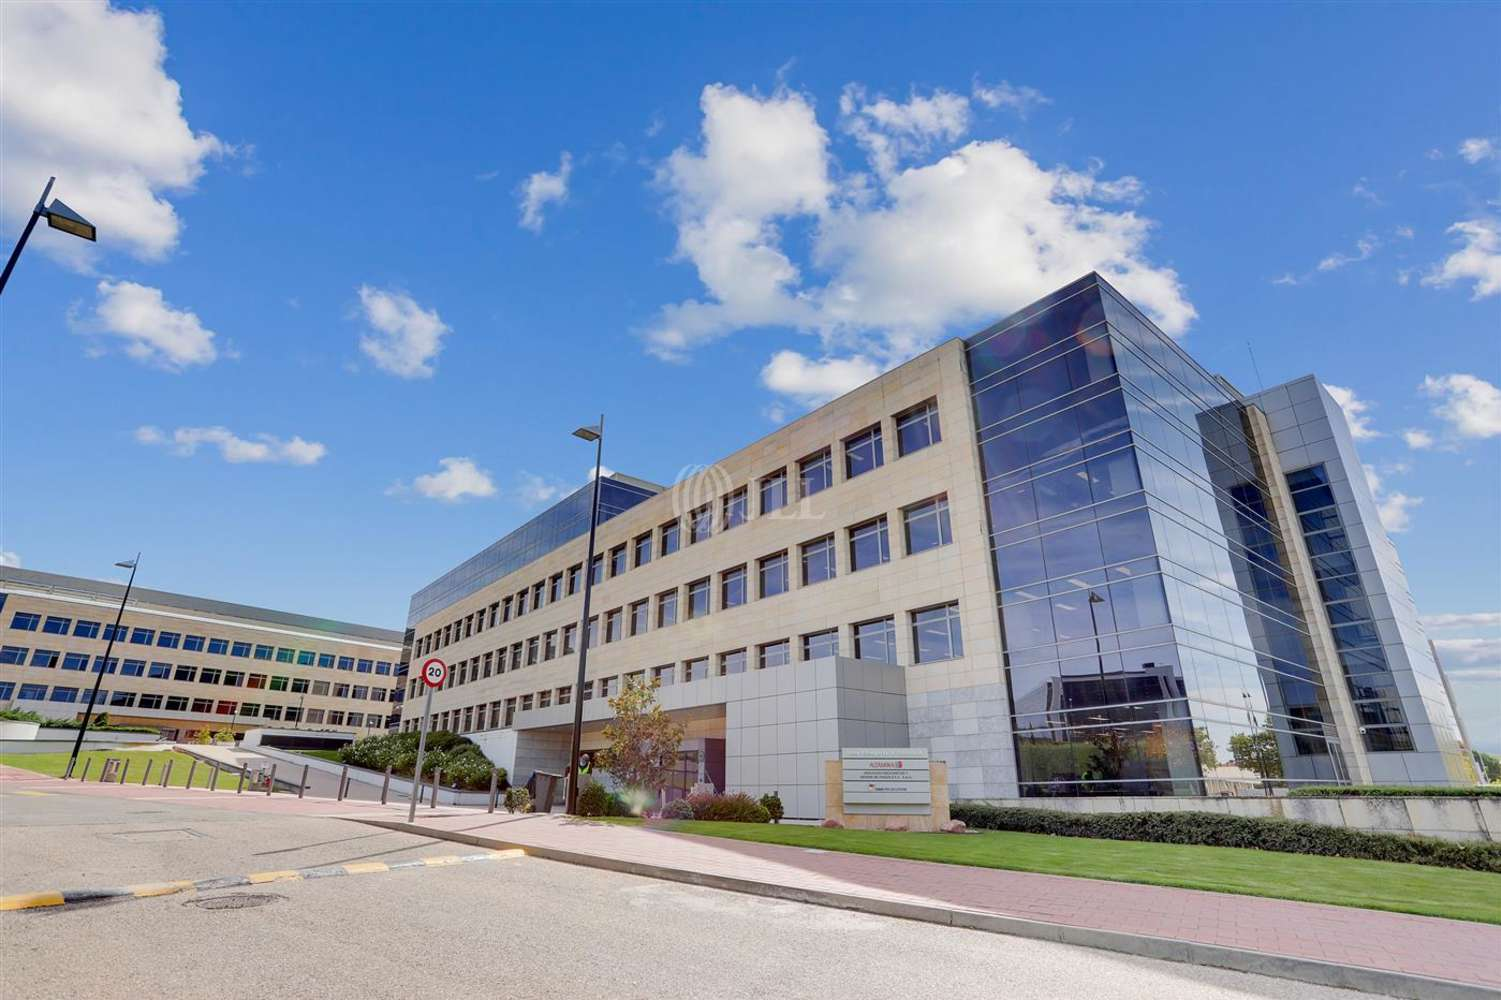 Oficina Las rozas de madrid, 28232 - Las Rozas Busines Campus Edificio A